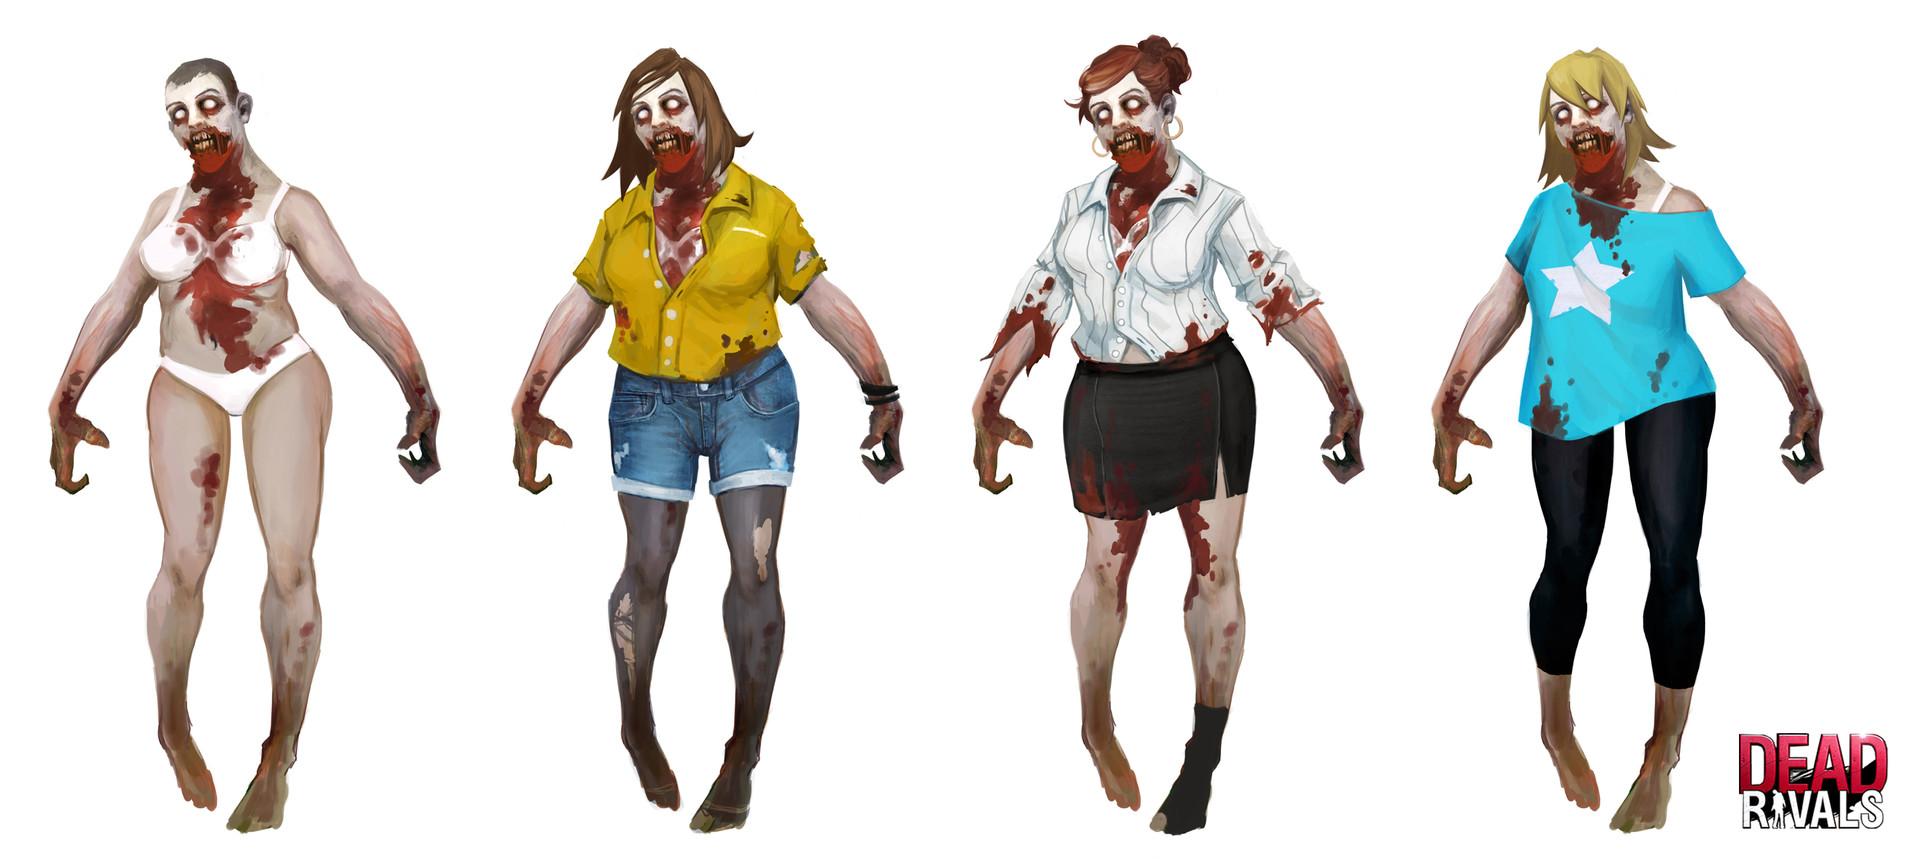 Alexandre chaudret dw characters zombies woman02